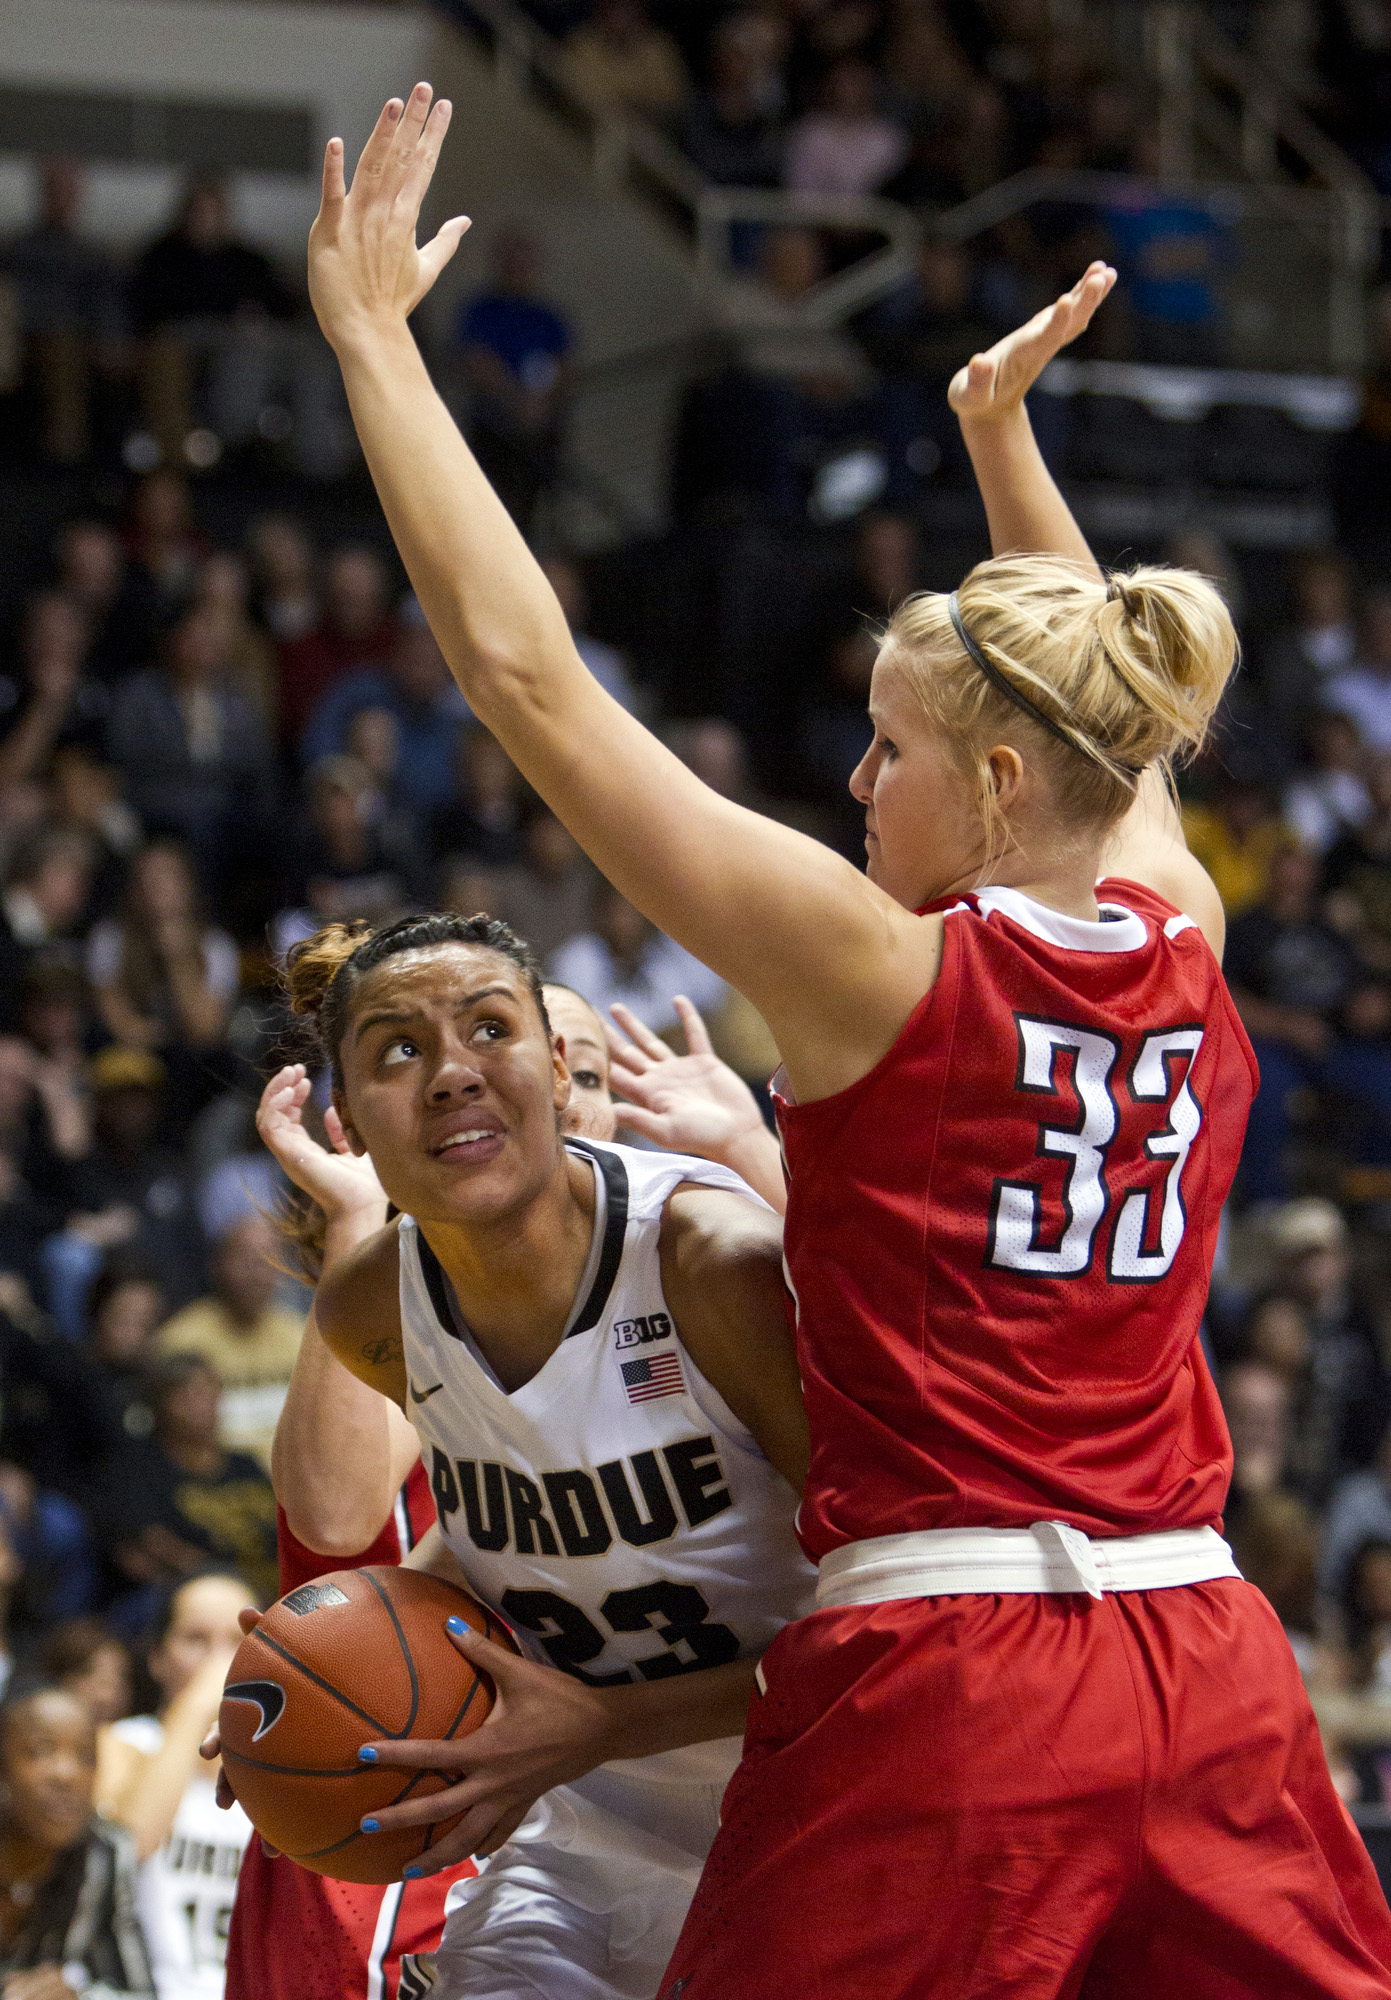 Purdue's Liza Clemons, left, tries to get around Ball State's Katie Murphy during an NCAA college basketball game Sunday, Nov. 10, 2013, in West Lafayette, Ind